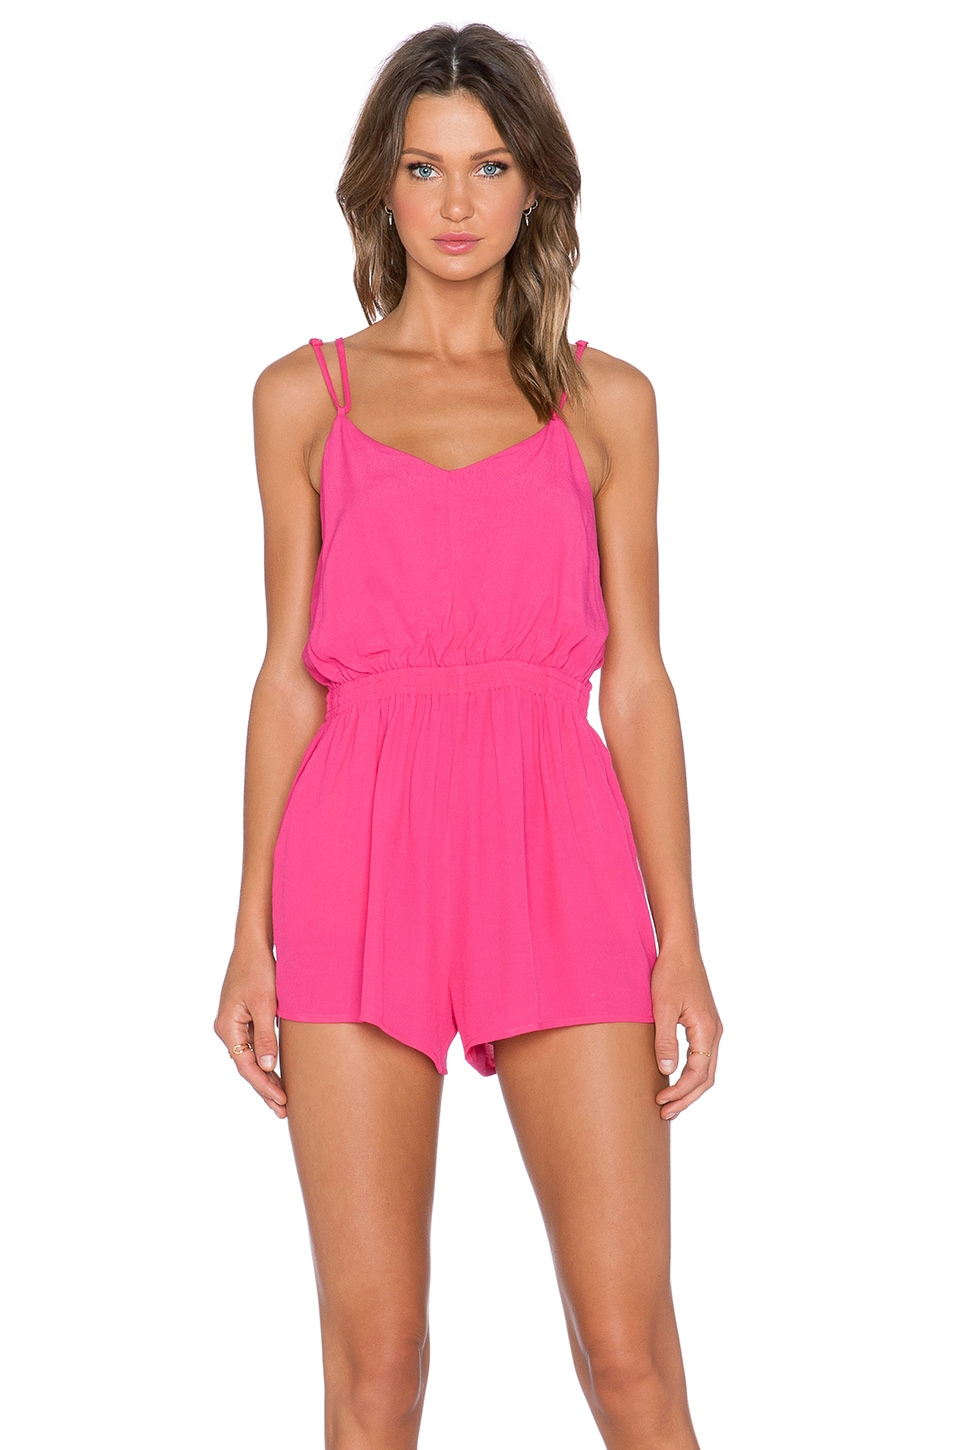 MINKPINK Summer Vacay Crossback Playsuit in Hot Pink